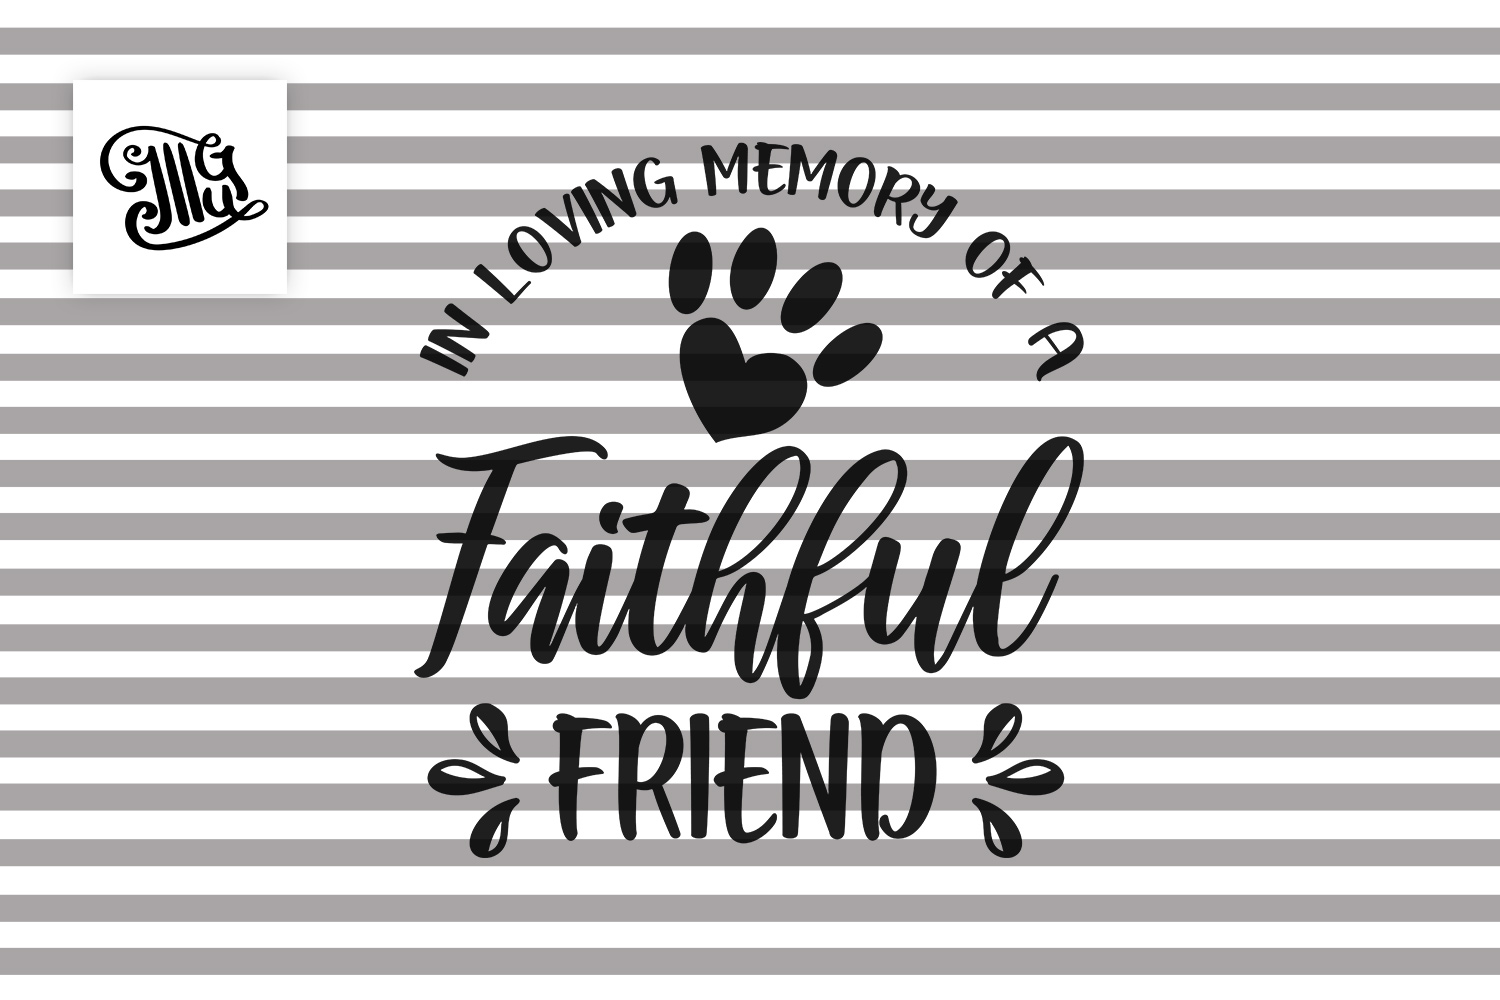 In loving memory of a faithful friend - Dog memorial example image 2